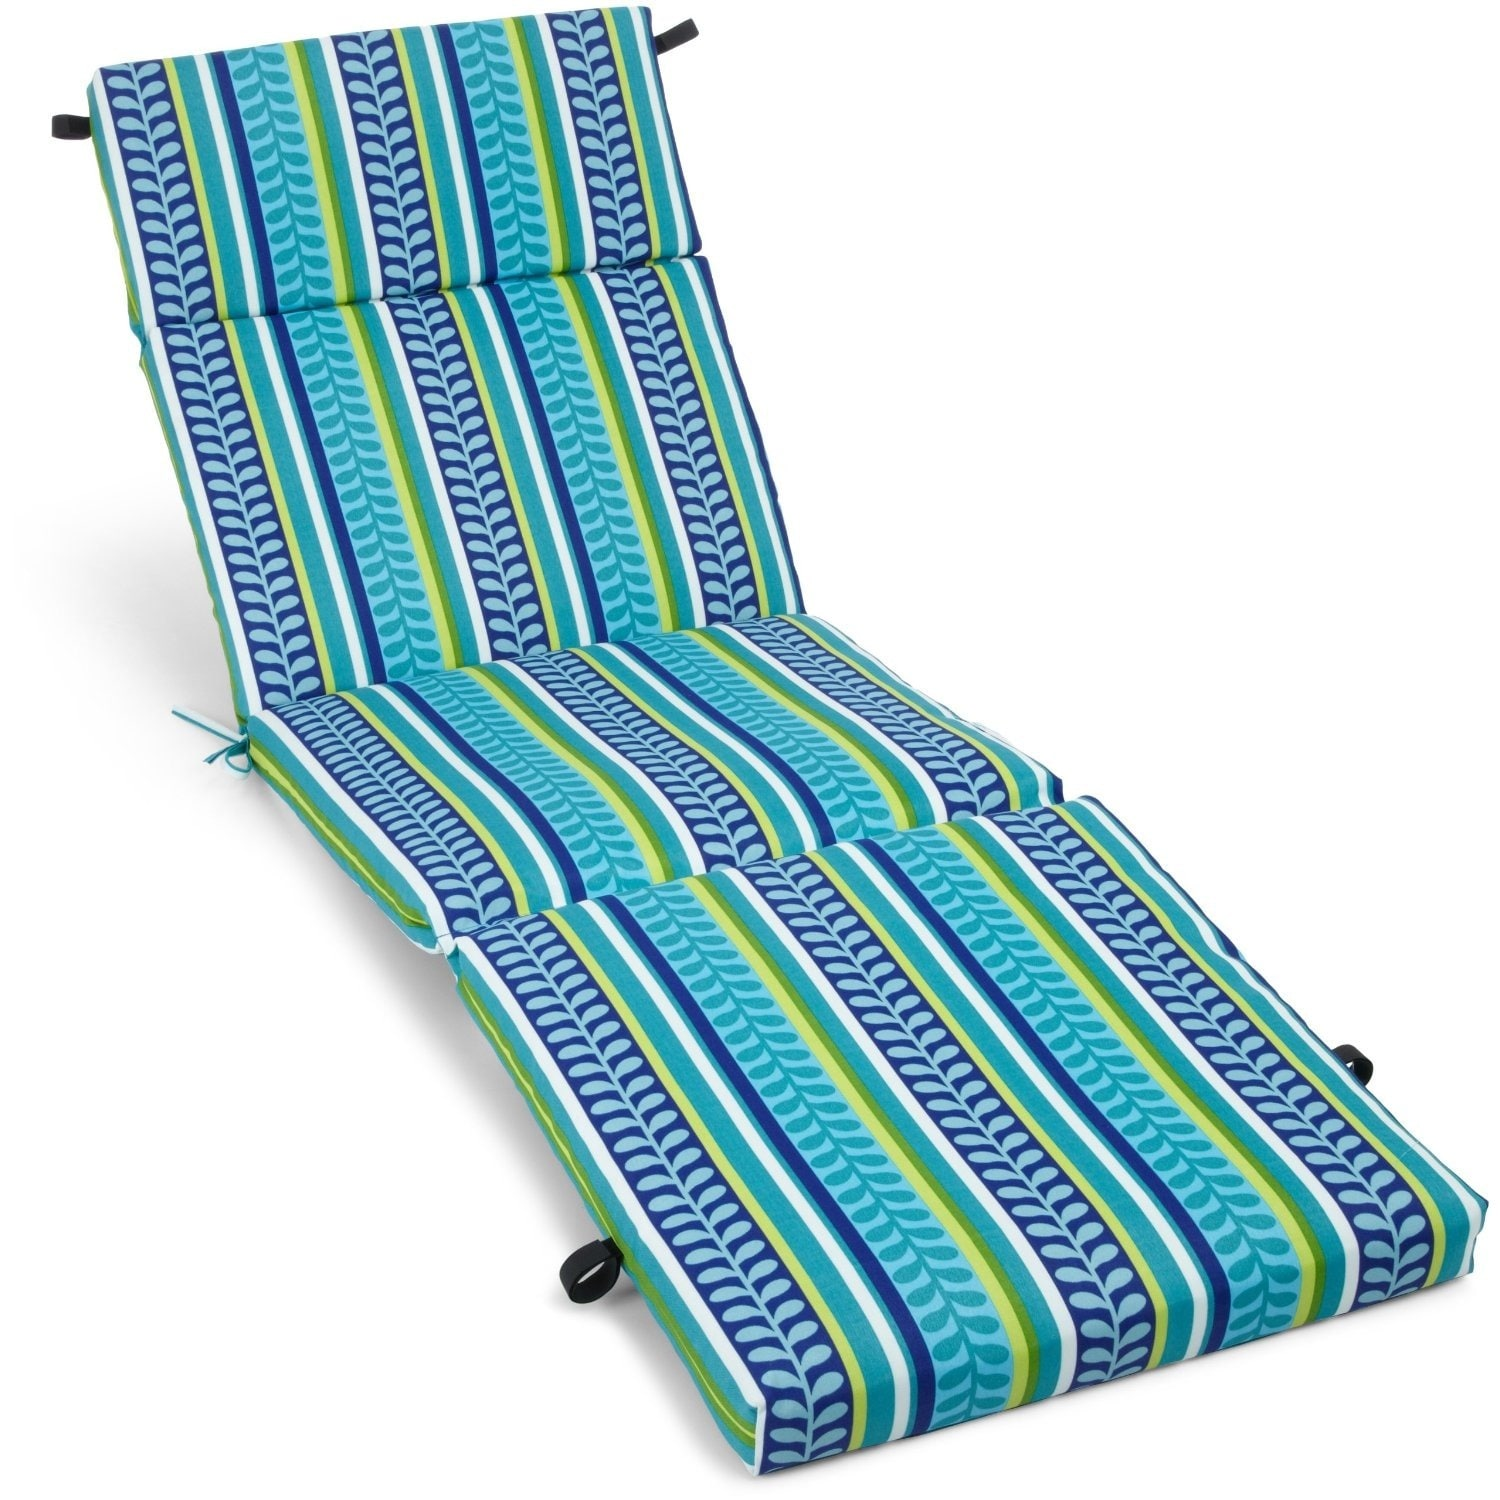 cushions of needles outdoor classy co sale cinnamon smsender patio on blazing chaise replacement lounge tulum cushion